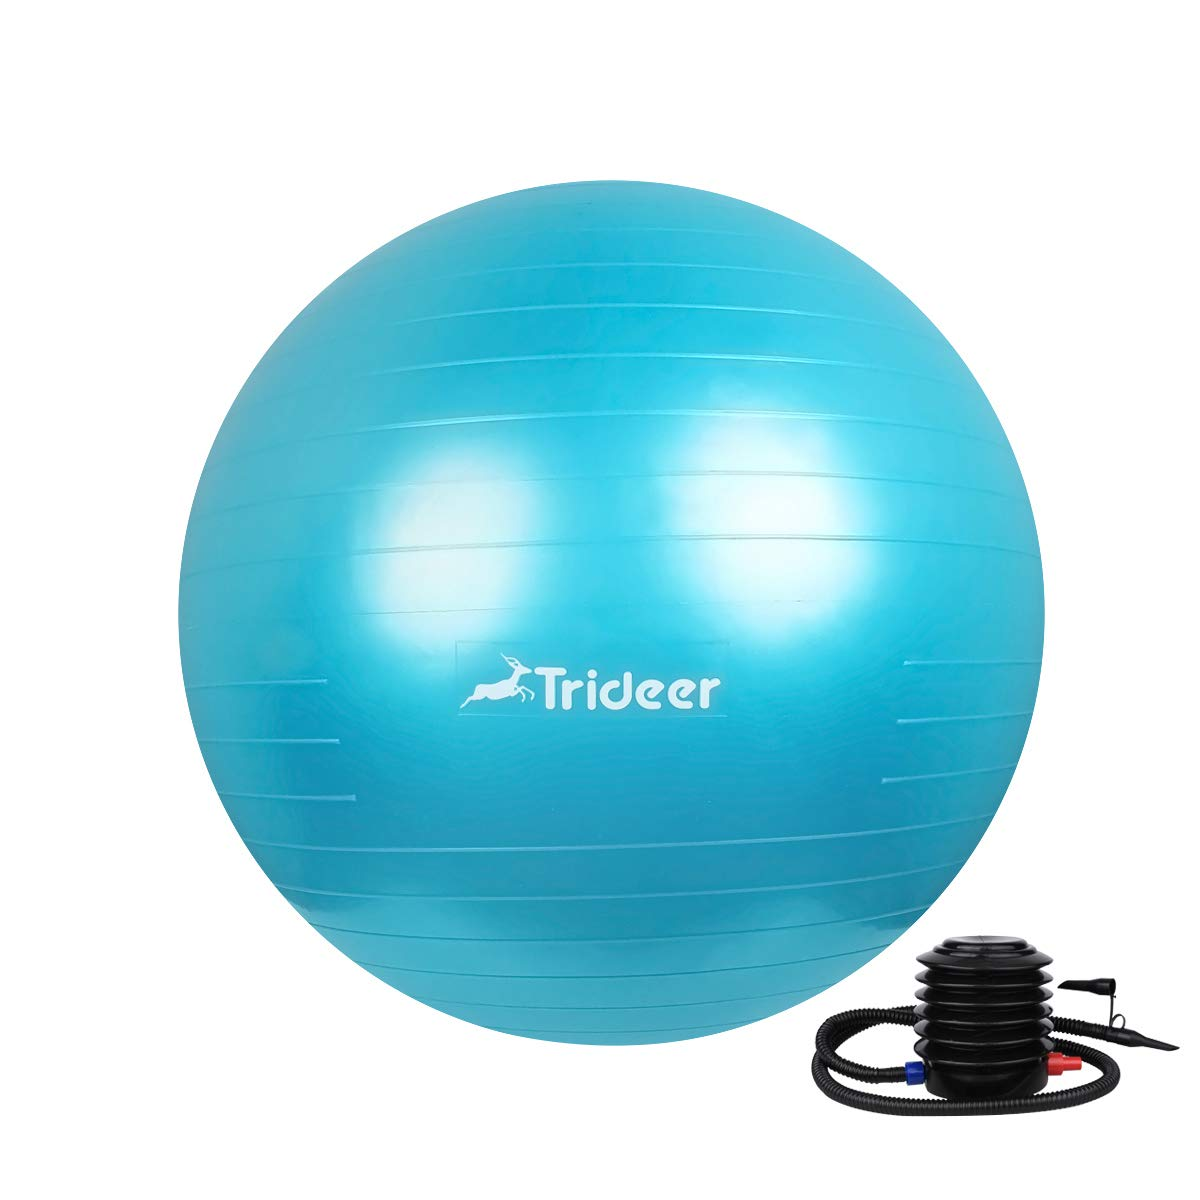 Trideer Exercise Ball (Multiple Sizes), Yoga Ball, Birthing Ball with Quick Pump, Anti-Burst & Extra Thick, Heavy Duty Ball Chair, Stability Ball Supports 2200lbs (Office&Home) (Turkis, M (48-55cm))